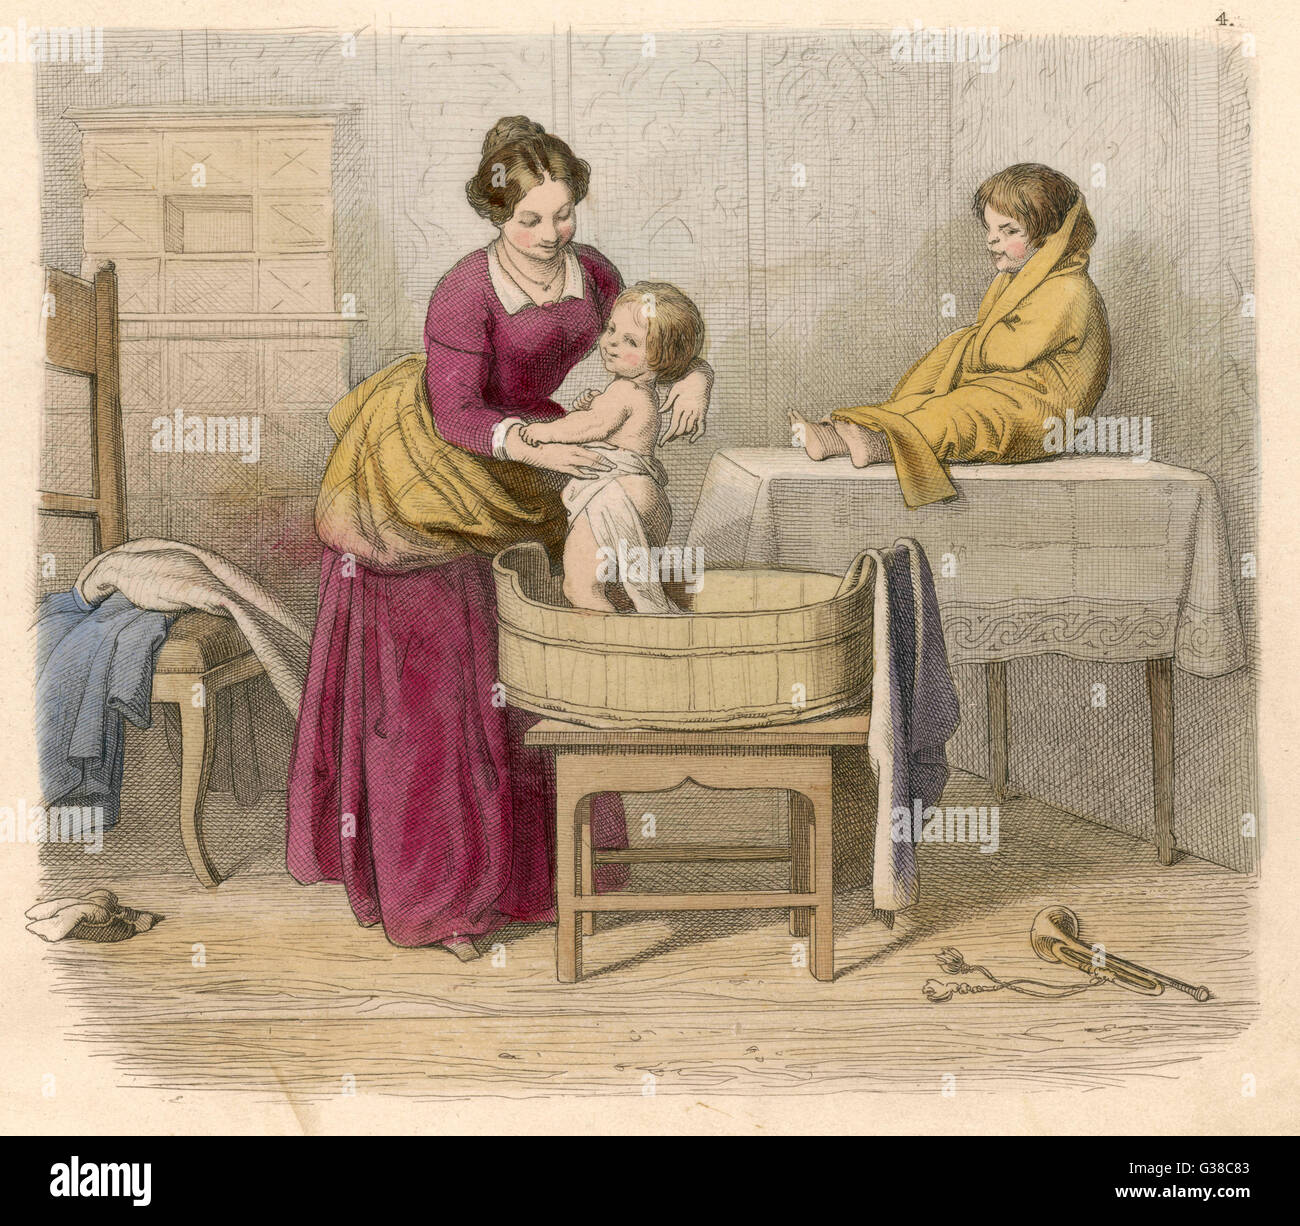 Mother bathing child          Date: 1852 - Stock Image